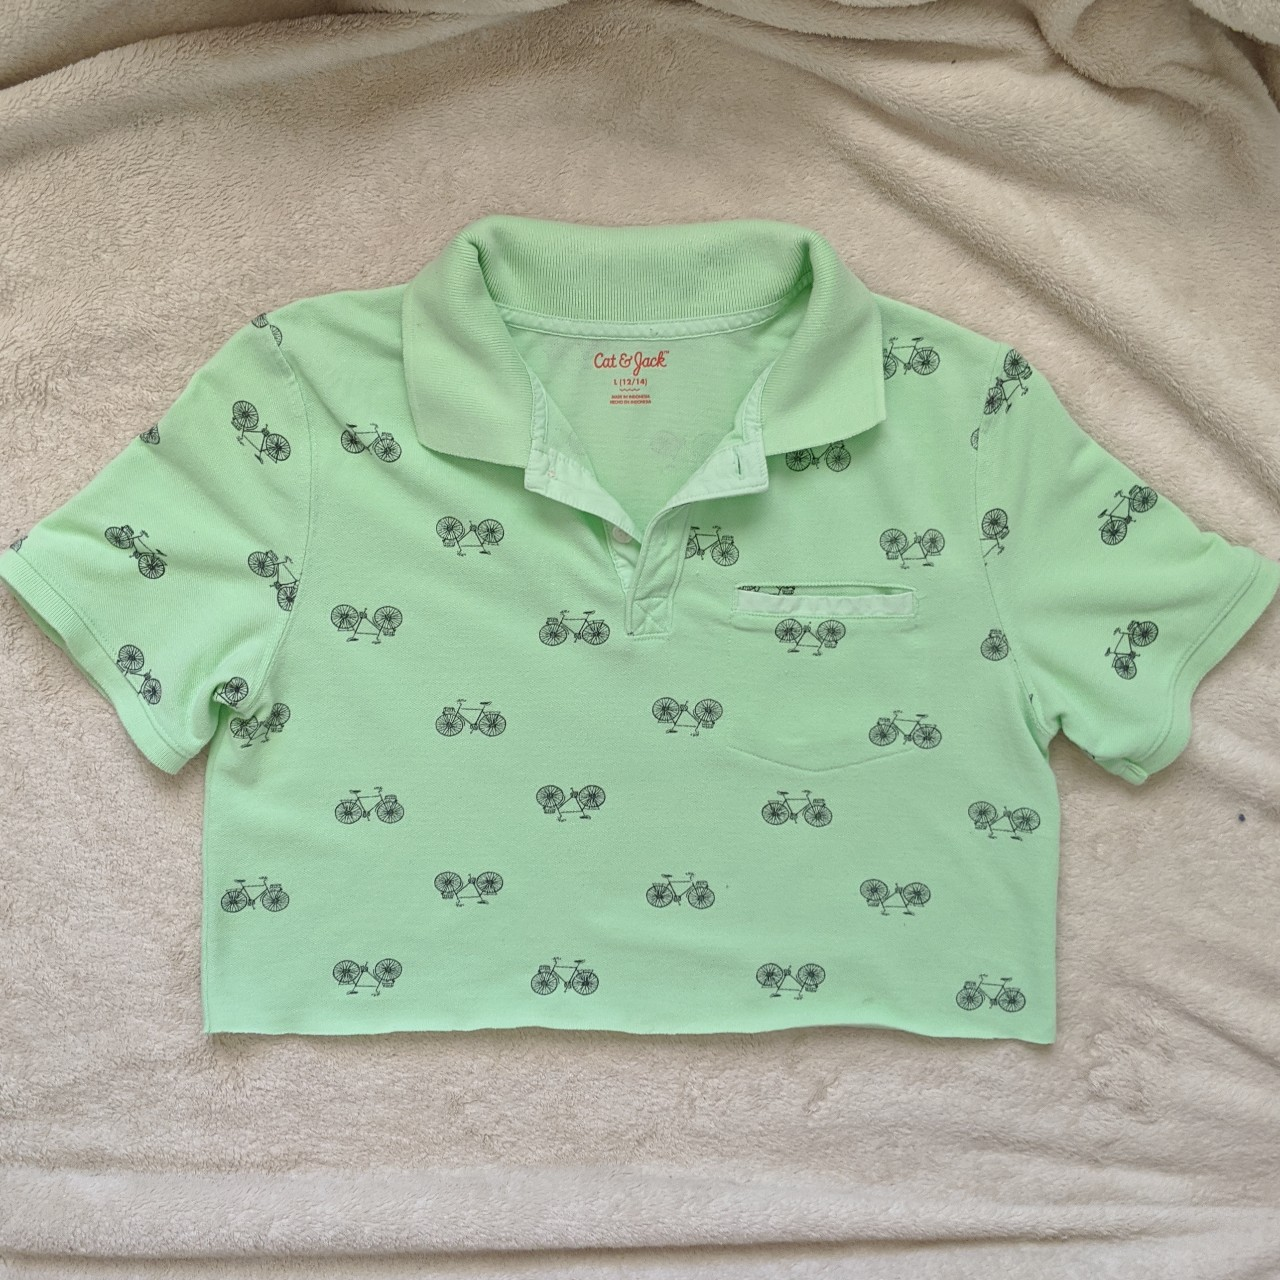 Pastel green polo cropped top with cute bicycle patterns🚲🚲in